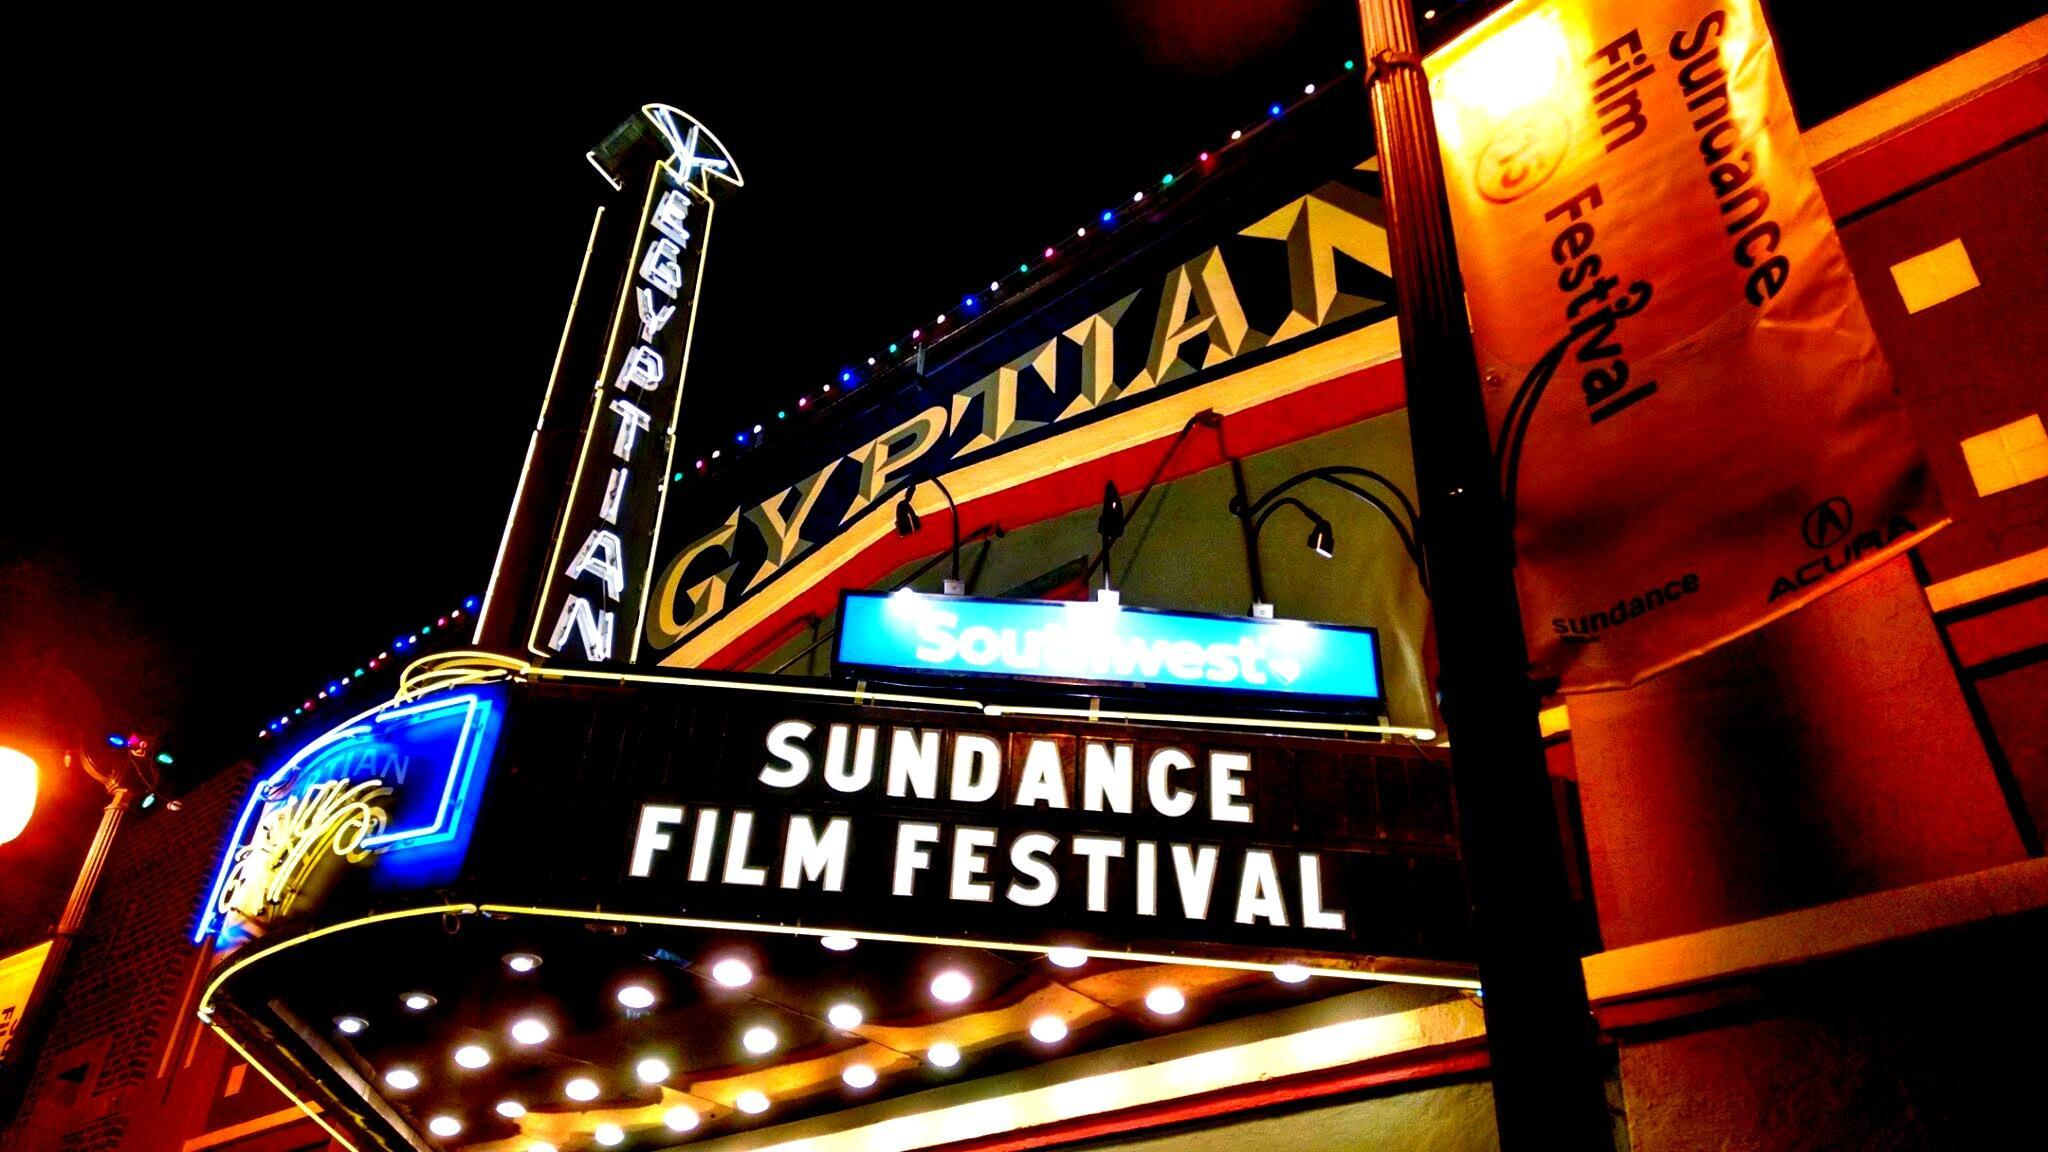 This year's Sundance Film Festival showcased the works of many NYU alumni.